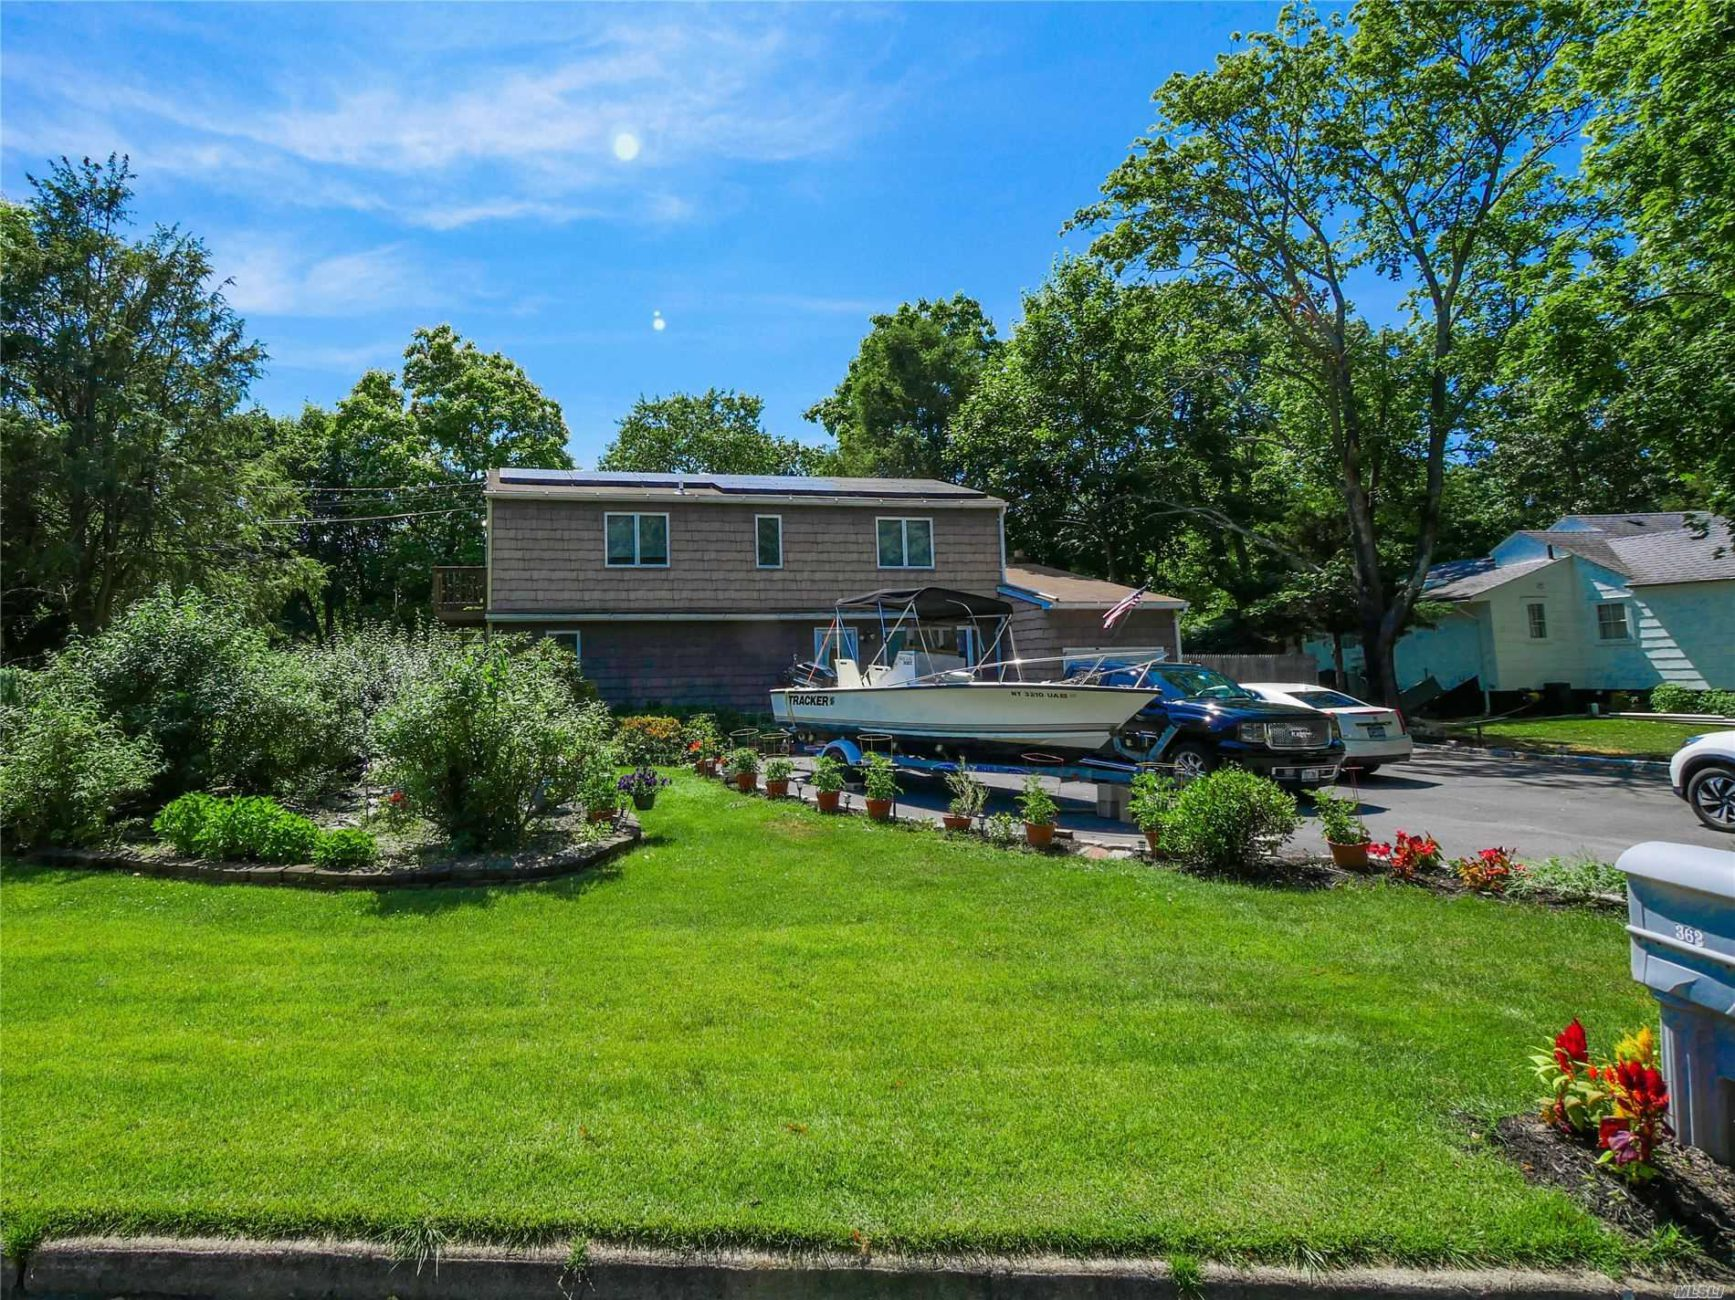 362 Browns Road. Nesconset, NY 11767